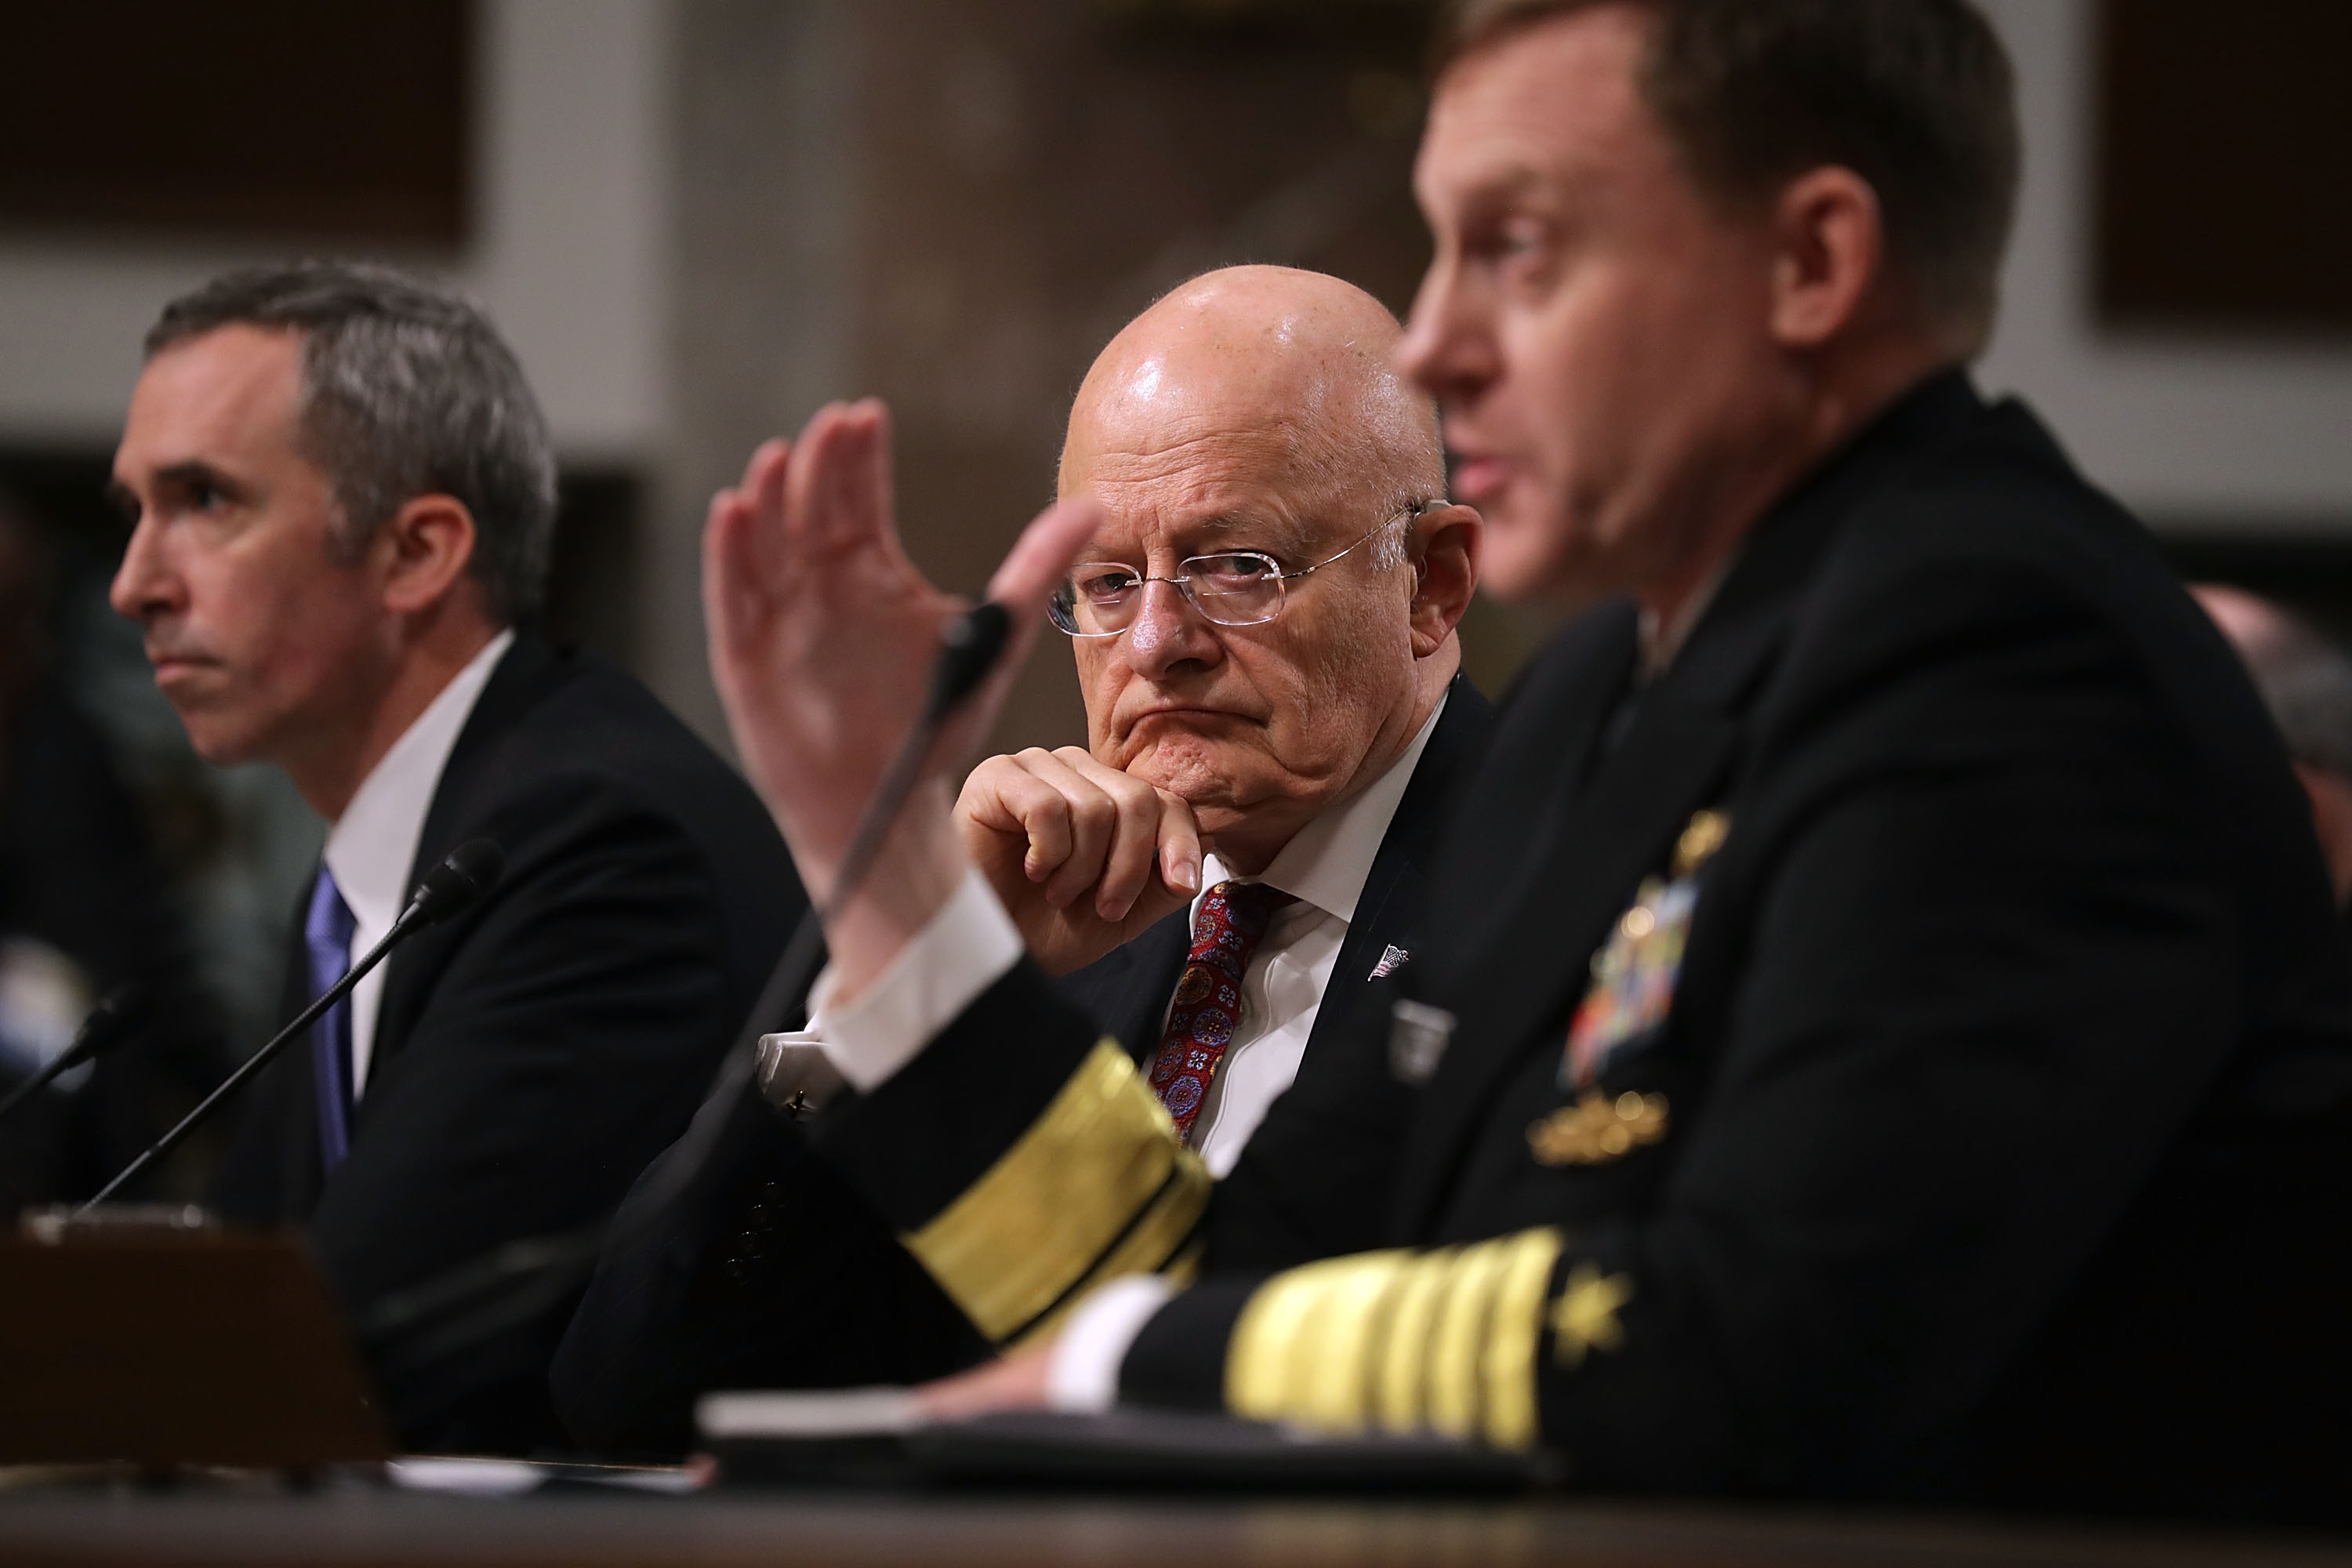 Left to right: Defense Undersecretary for Intelligence Marcell Lettre II, Director of National Intelligence James Clapper and United States Cyber Command and National Security Agency Director Admiral Michael Rogers testify before the Senate Armed Services Committee on Thursday.